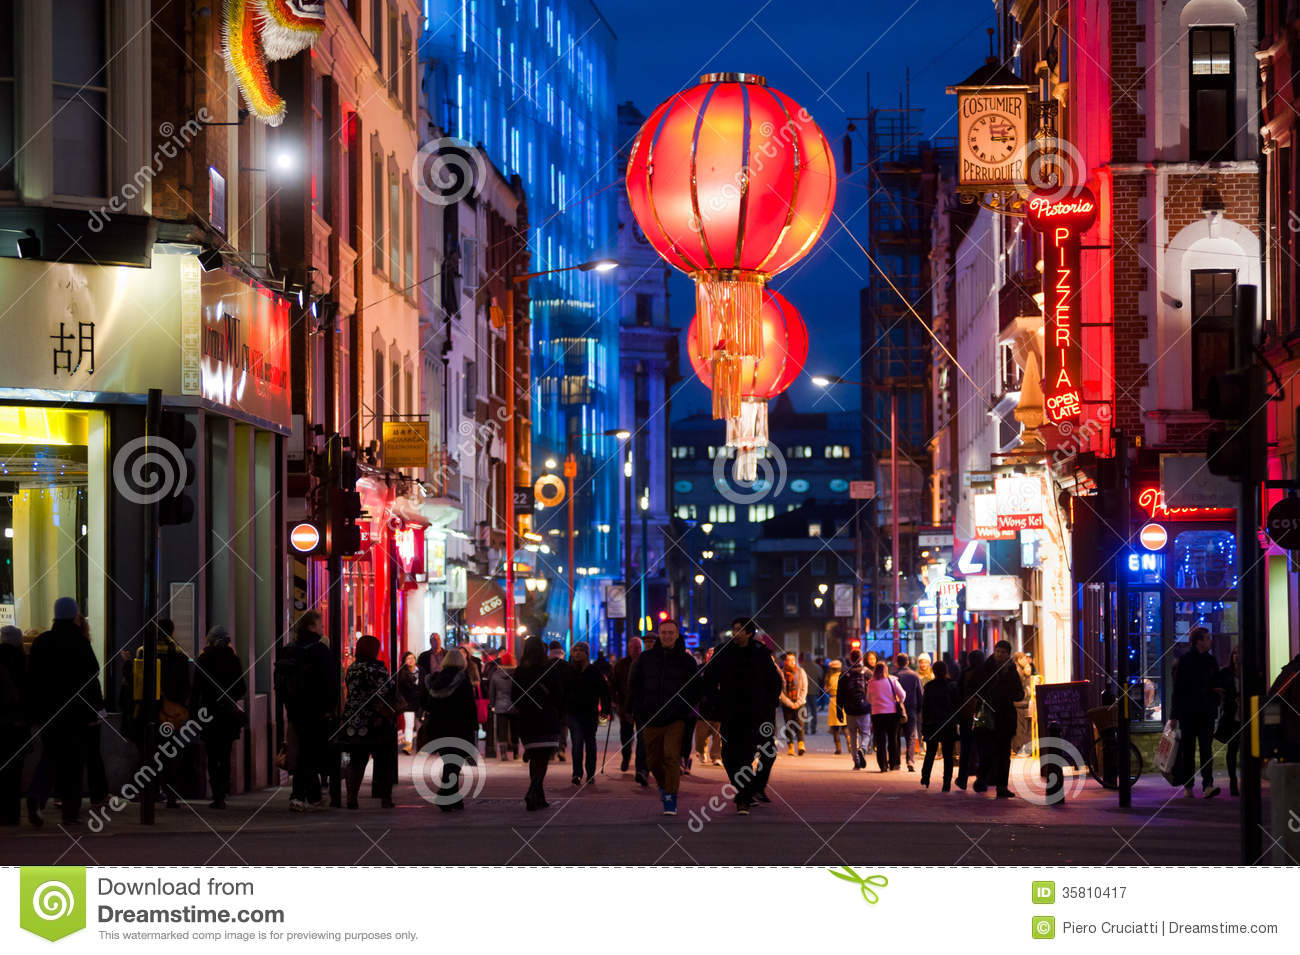 People enjoy the nightlife in chinatown in london on december 6 2013